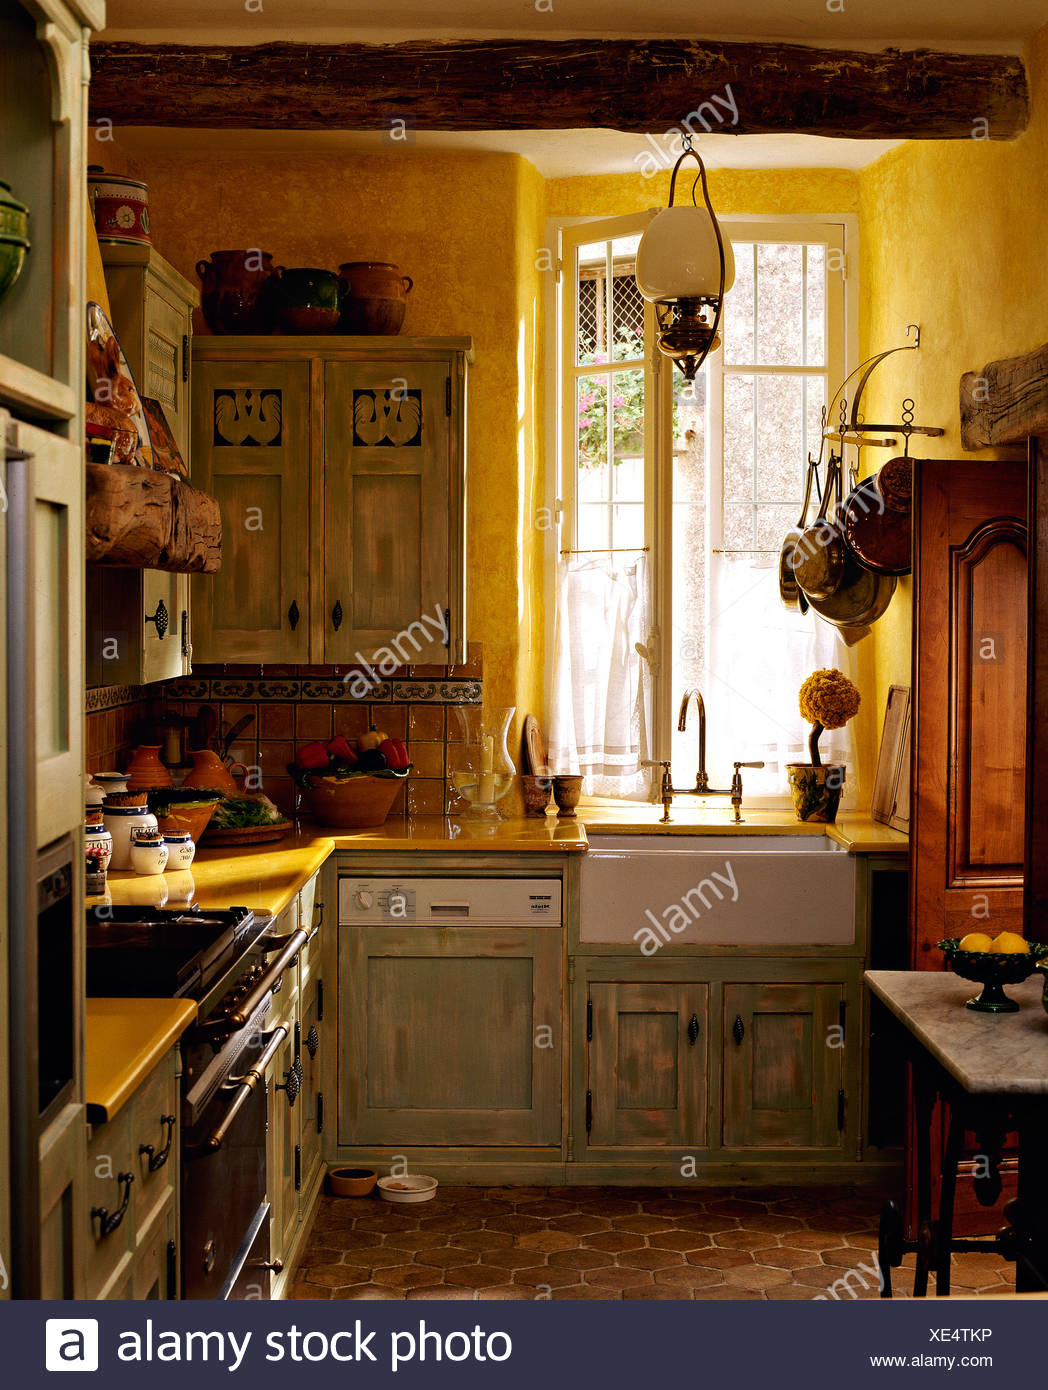 Pale Gray Green Distressed Cupboards In Yellow French Country Kitchen With Terracotta Tiled Floor And Belfast Sink Stock Photo Alamy